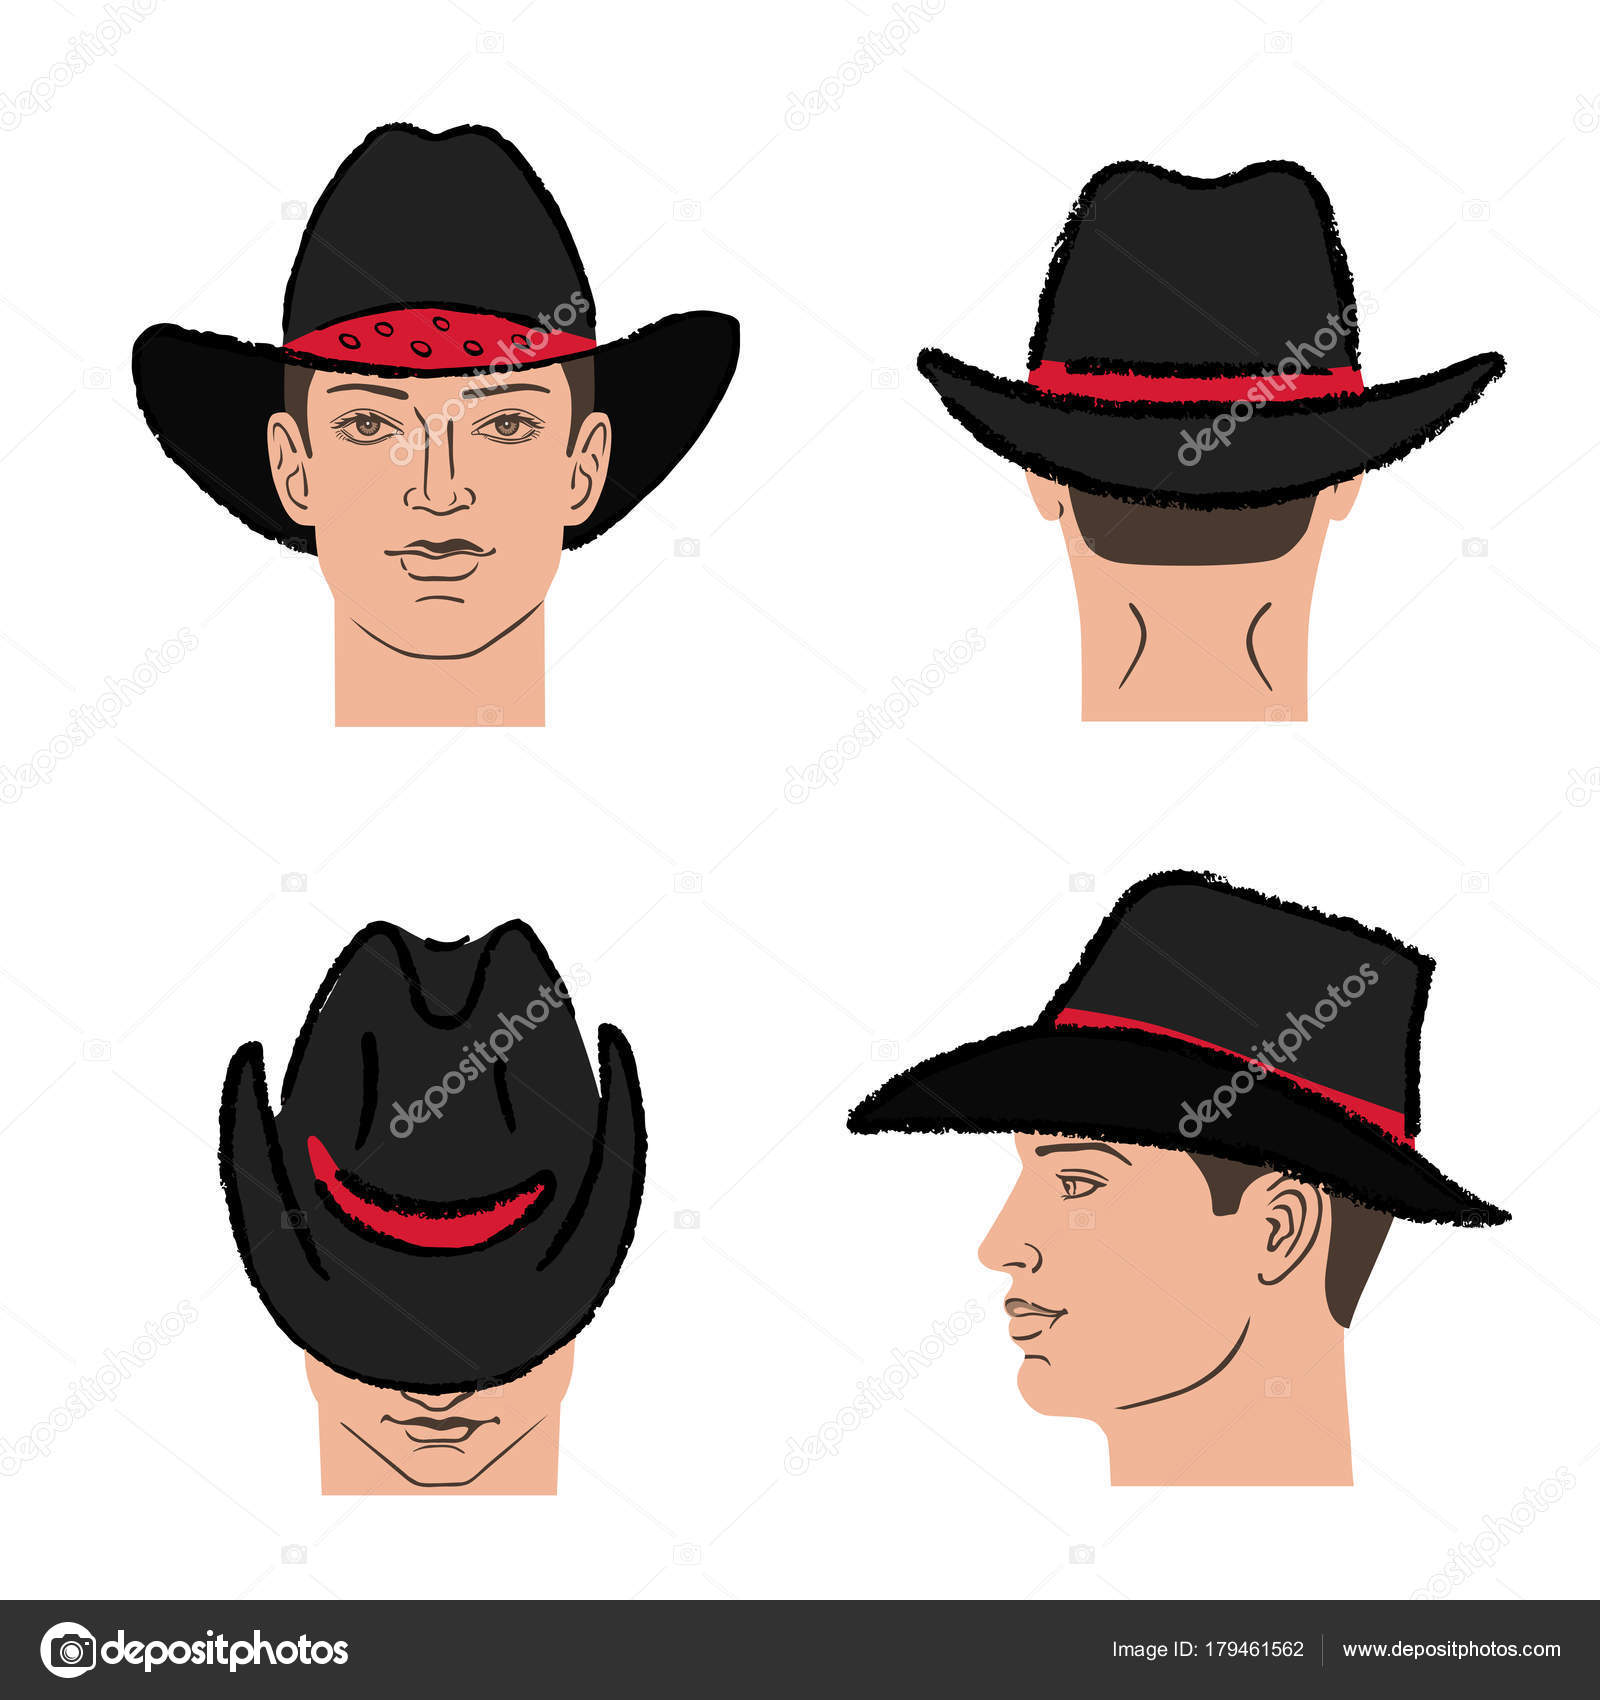 Cowboy Hat Outlined Oil Pastel Template Sketch Front Back Side Views And Man Head Vector Illustration Isolated On White Background By Arlatis